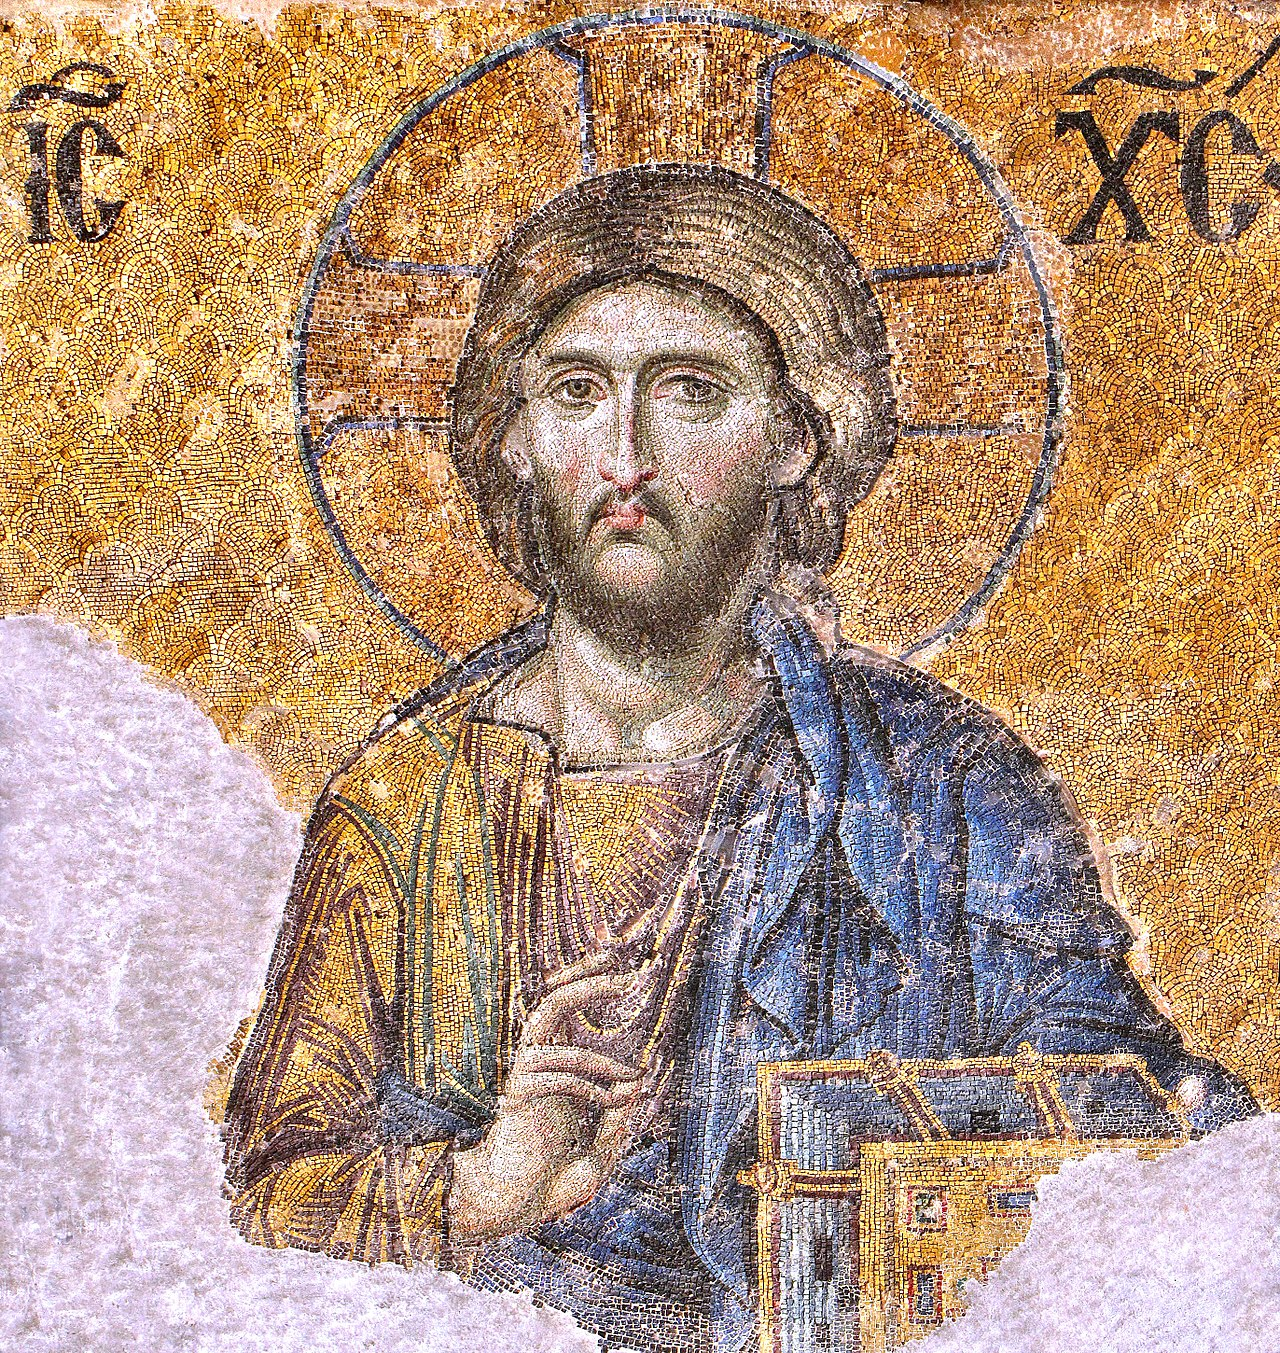 1280px-Christ_Pantocrator_mosaic_from_Hagia_Sophia_2744_x_2900_pixels_3.1_MB.jpg